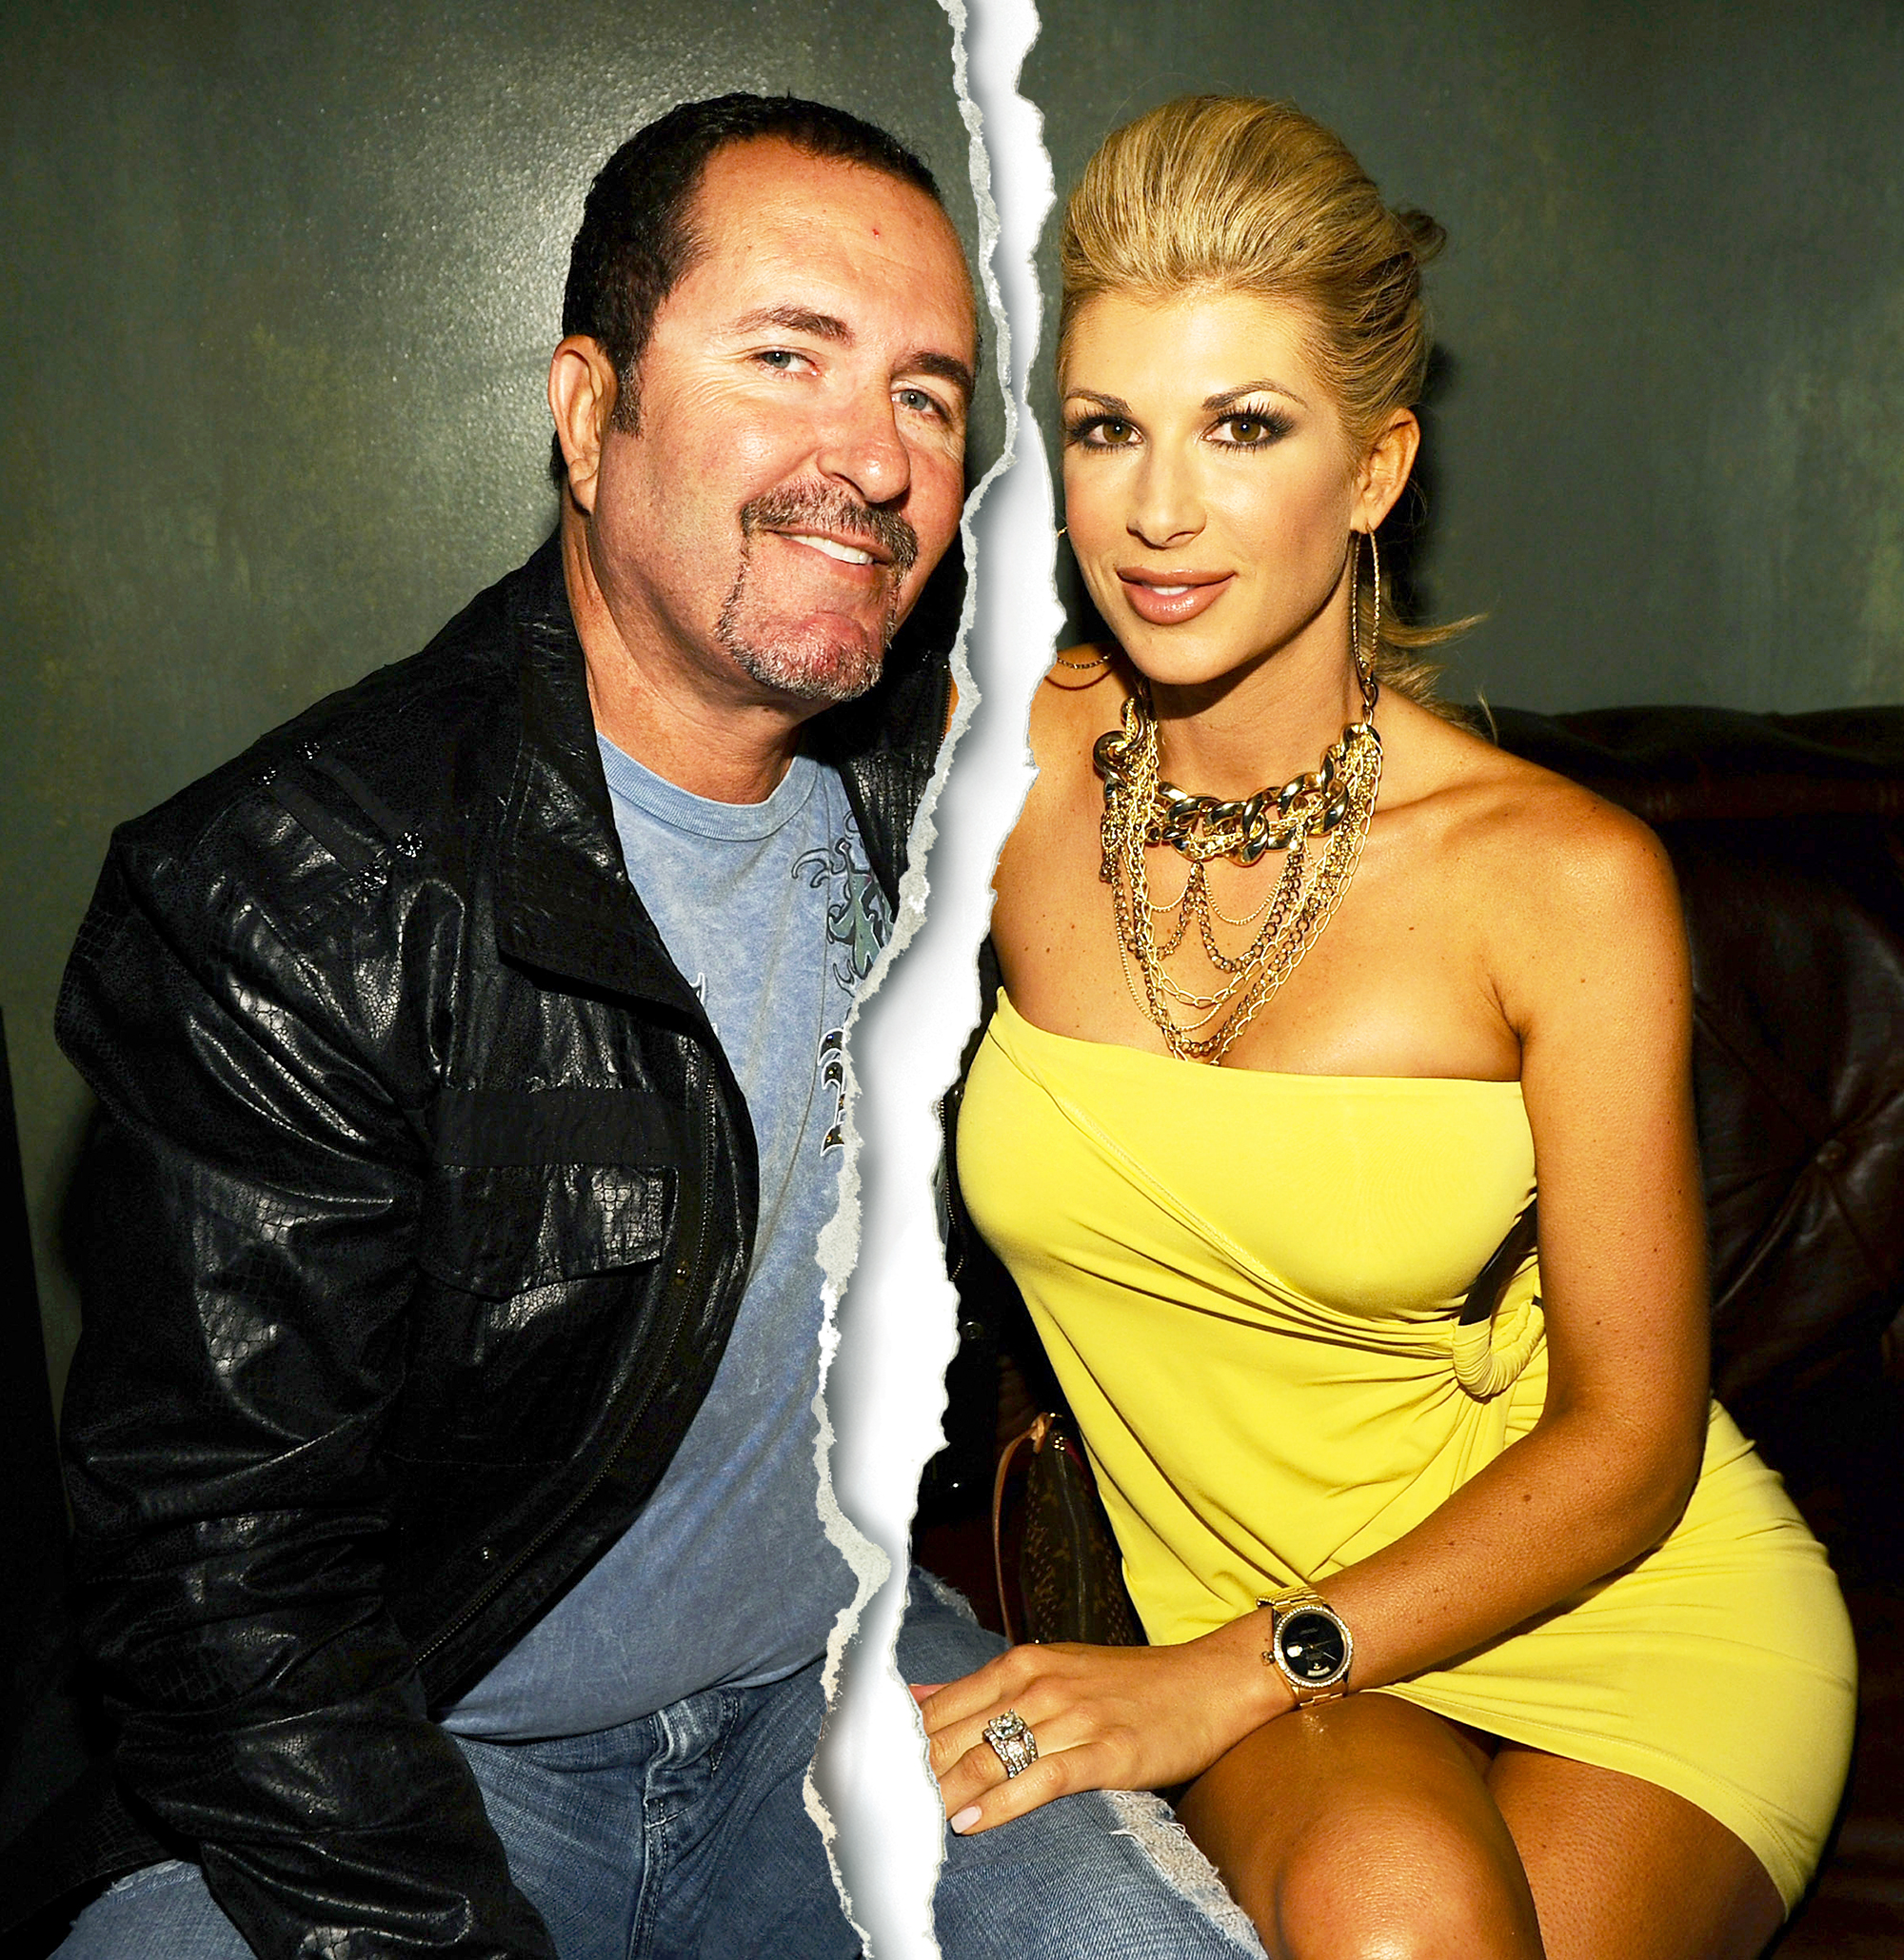 Jim Bellino and Alexis Bellino attend the 2011 LG Revolution party hosted by Verizon at The Sayers Club in Hollywood California